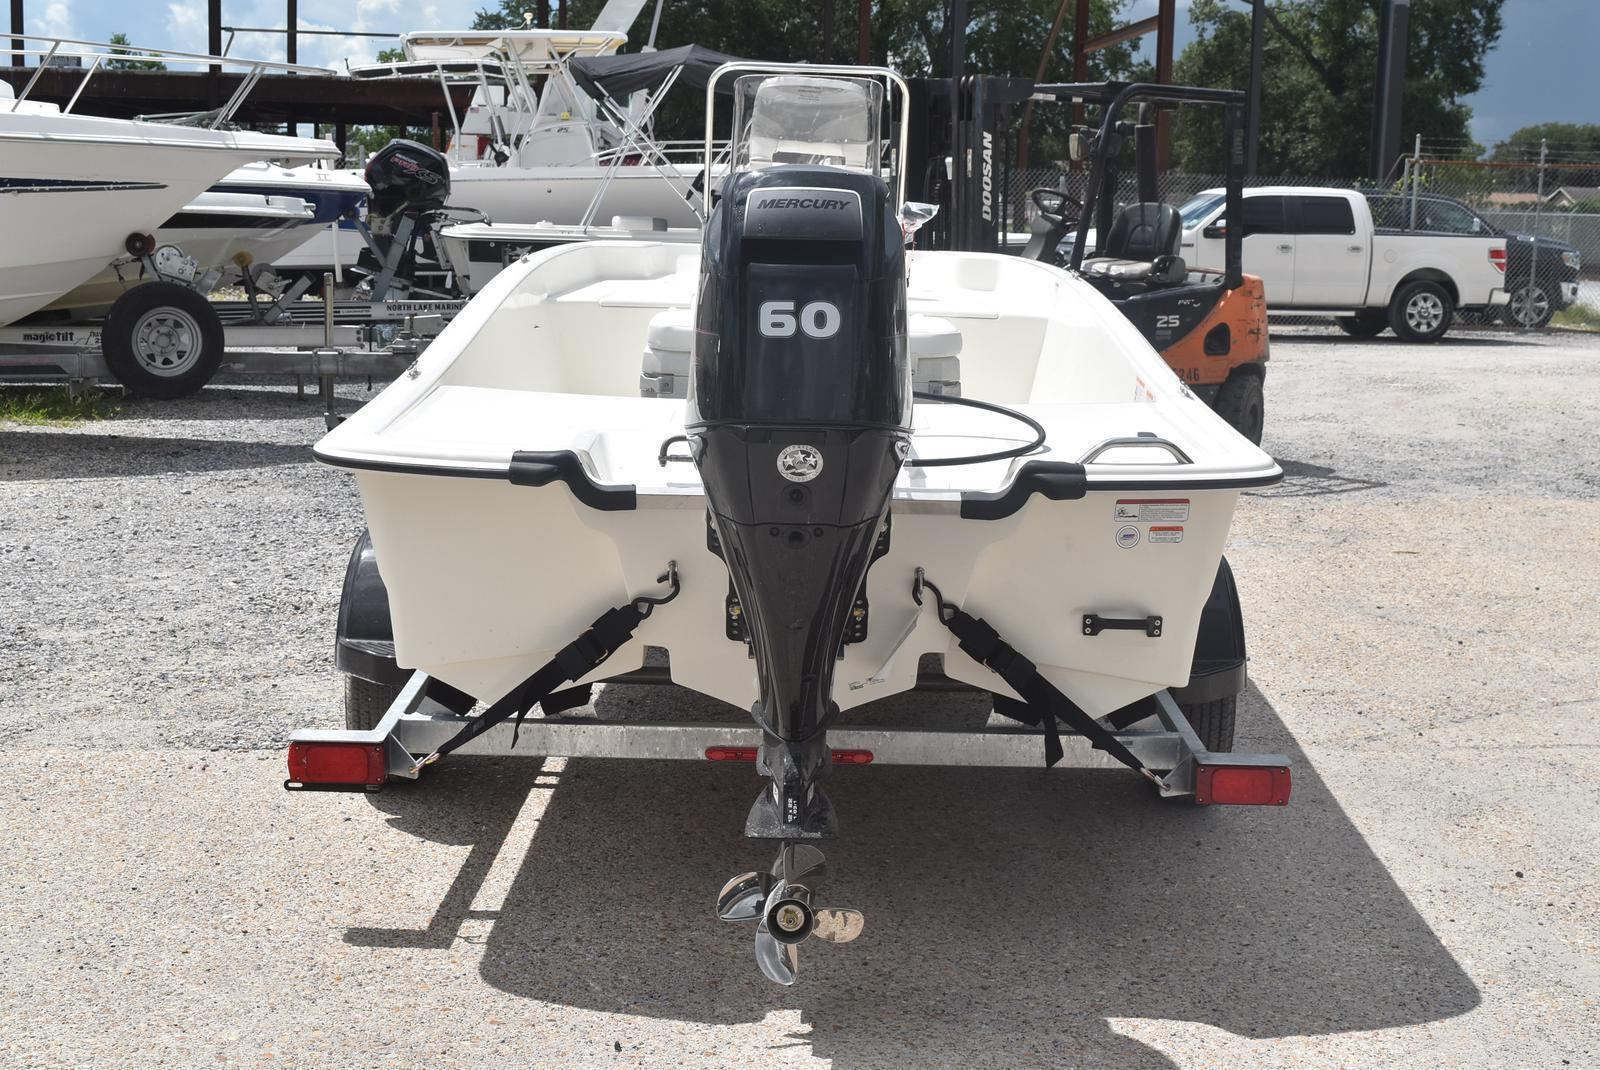 2020 Mako boat for sale, model of the boat is Pro Skiff 17, 75 ELPT & Image # 586 of 702